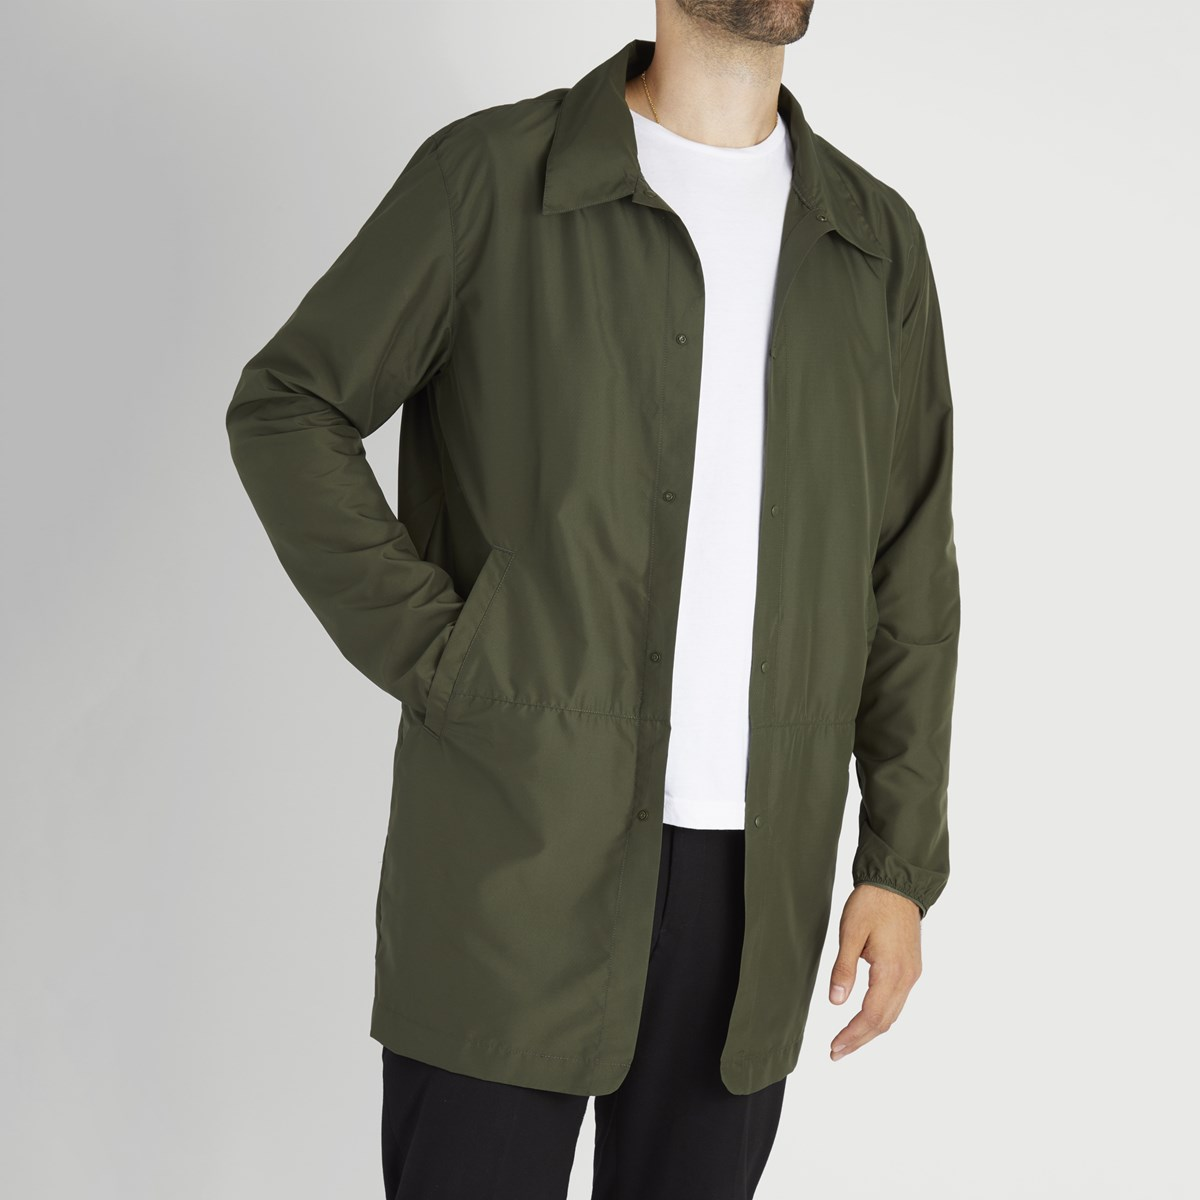 Men's Long Coach Jacket in Dark Olive